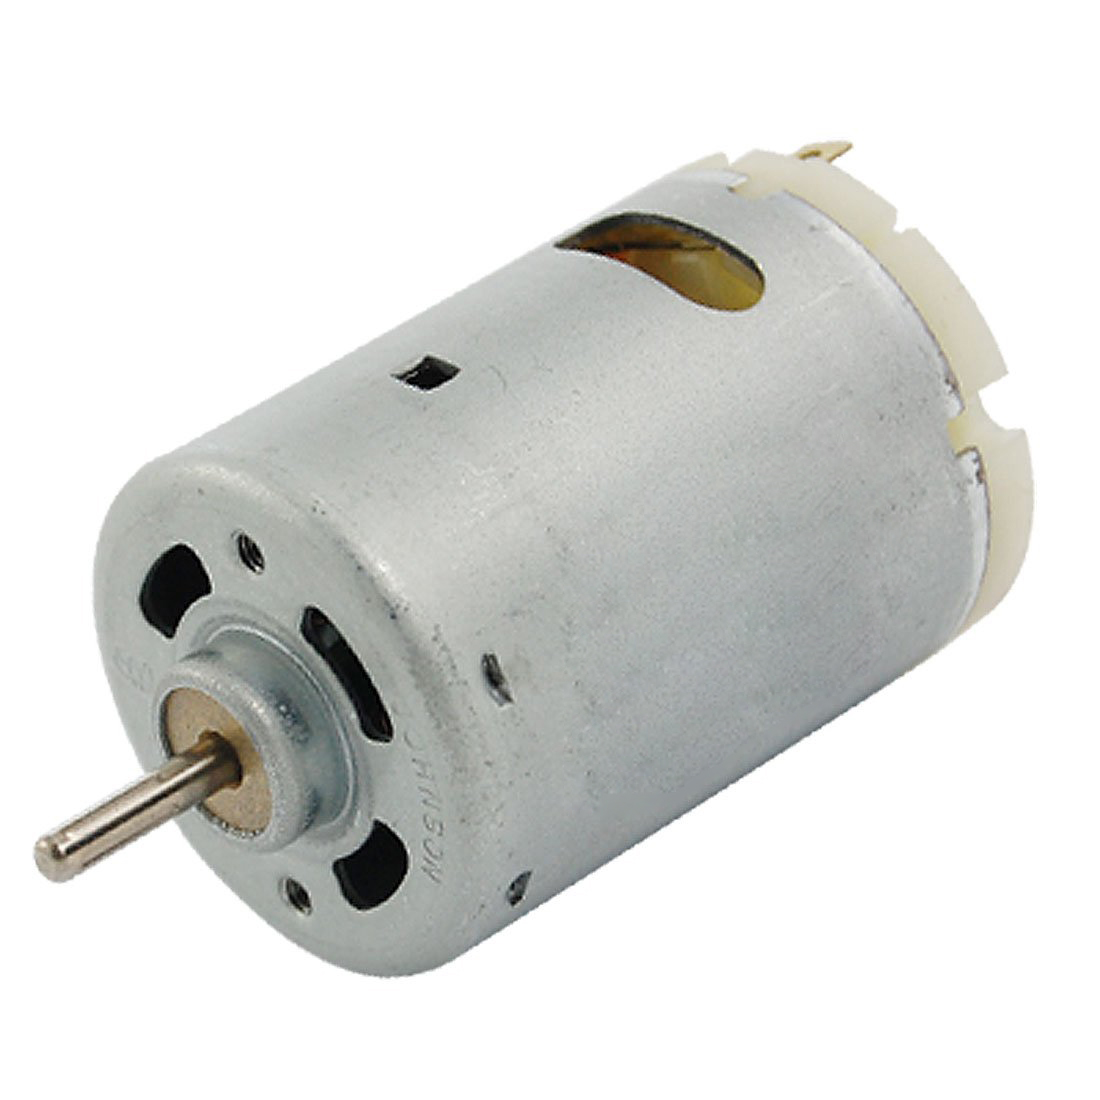 Dc 12v 1 1 2a 15000rpm High Torque Electric Motor For Diy